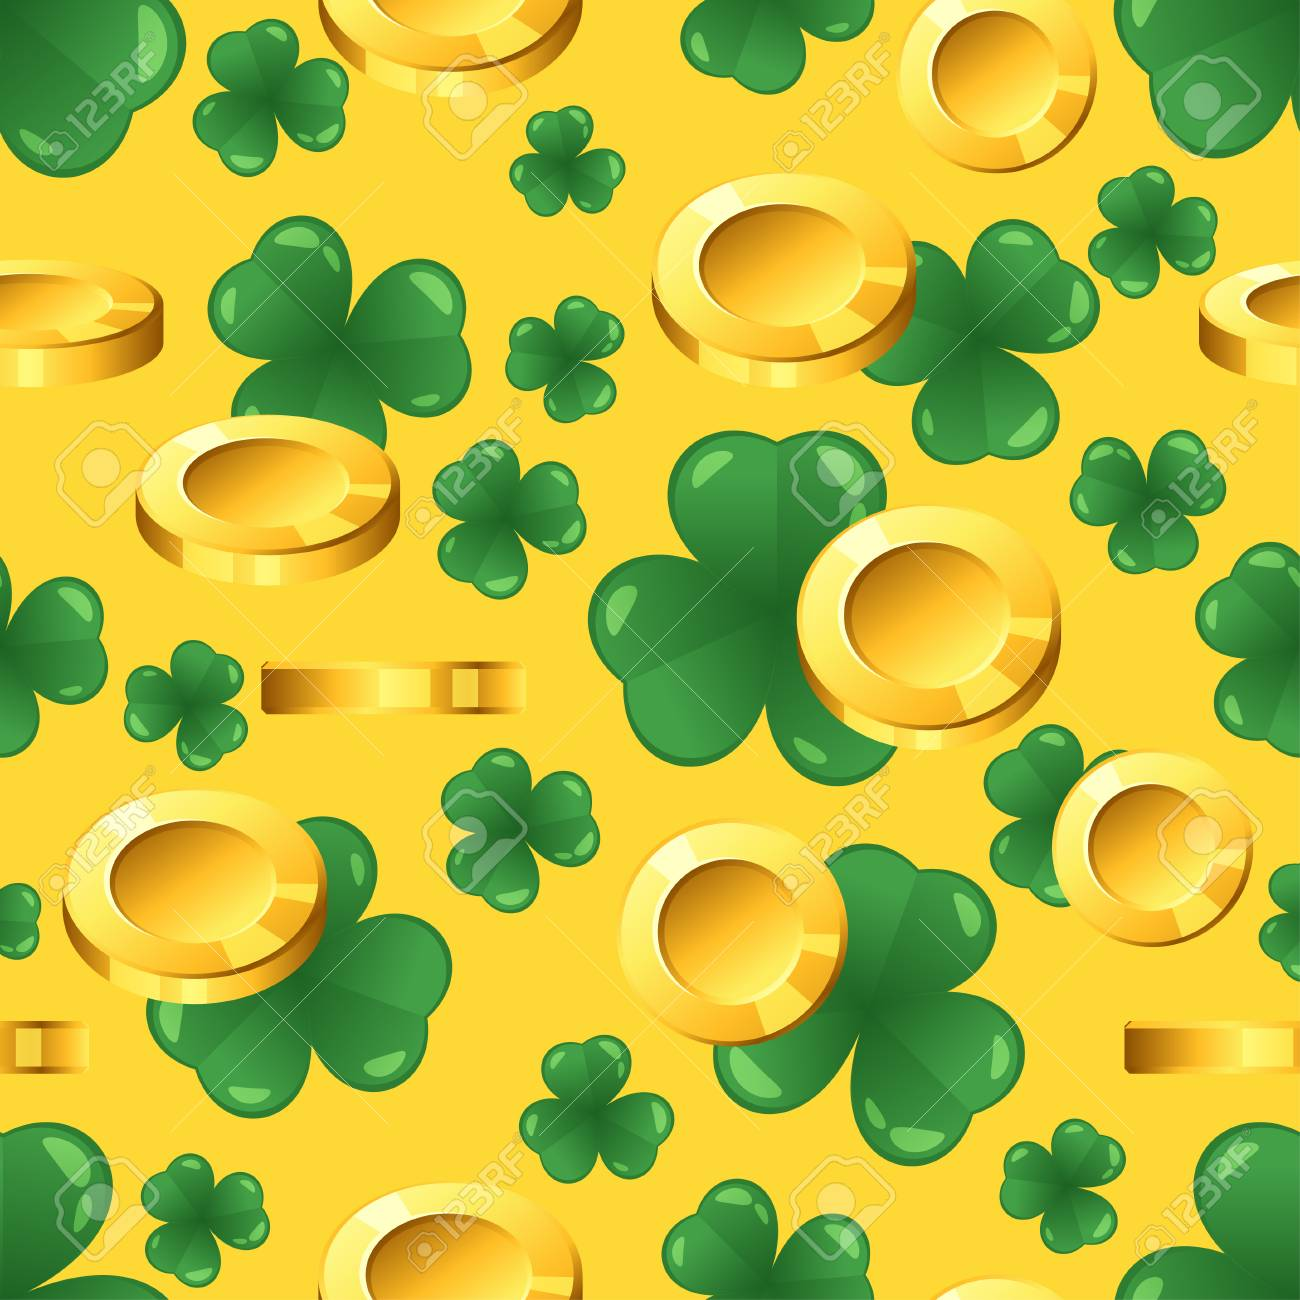 Vector seamless pattern with golden coins and shamrock on yellow background. St. Patrick's day ornament. - 95218805